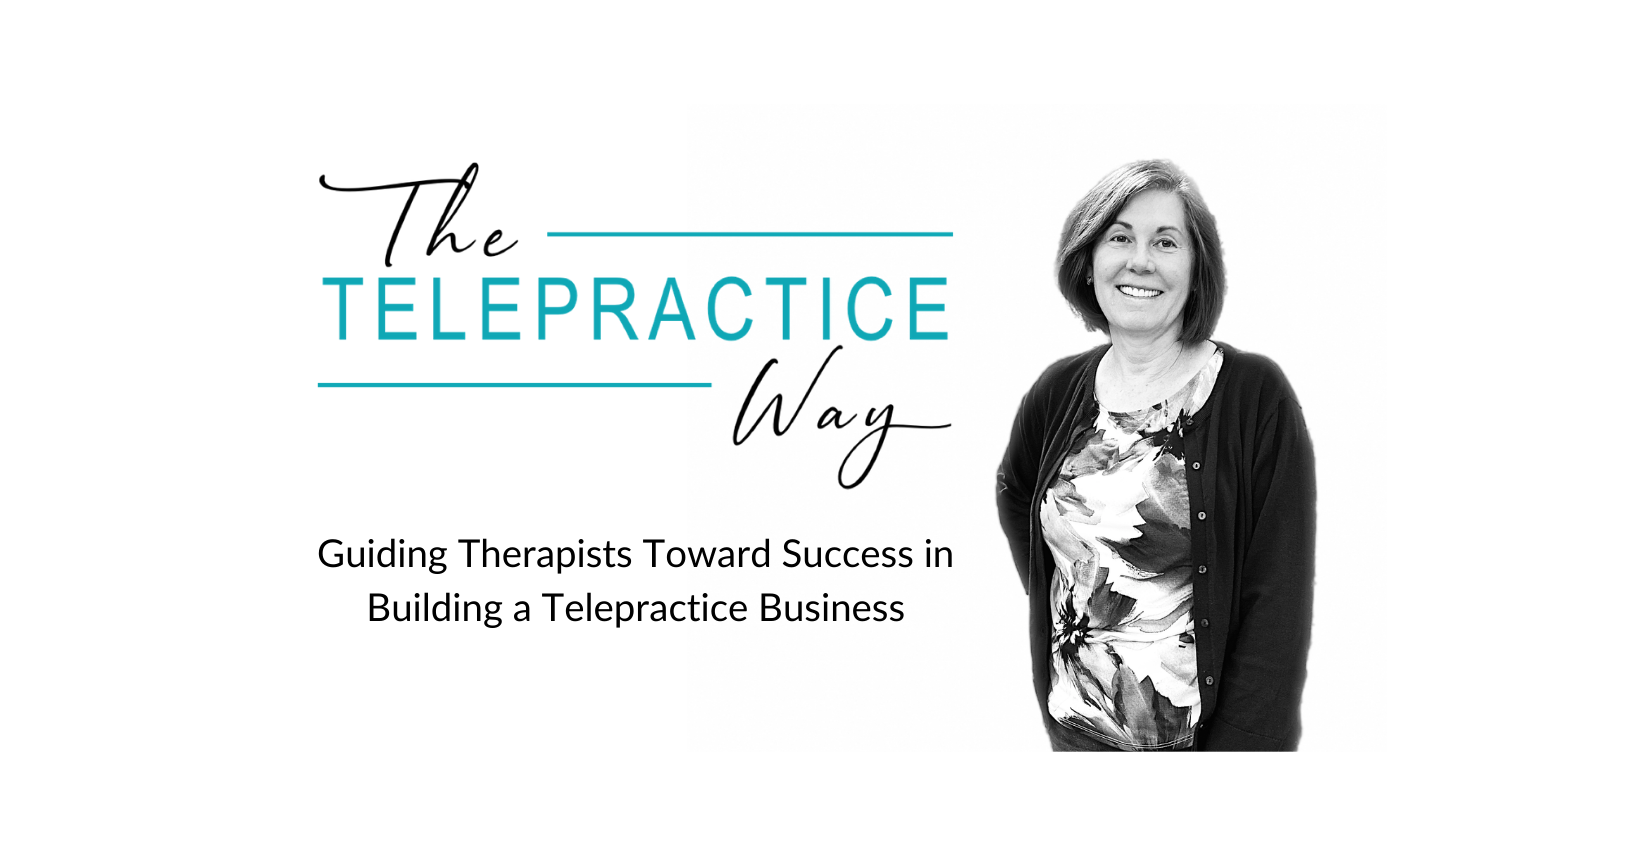 Anna Krueger, Founder of the Telepractice Way